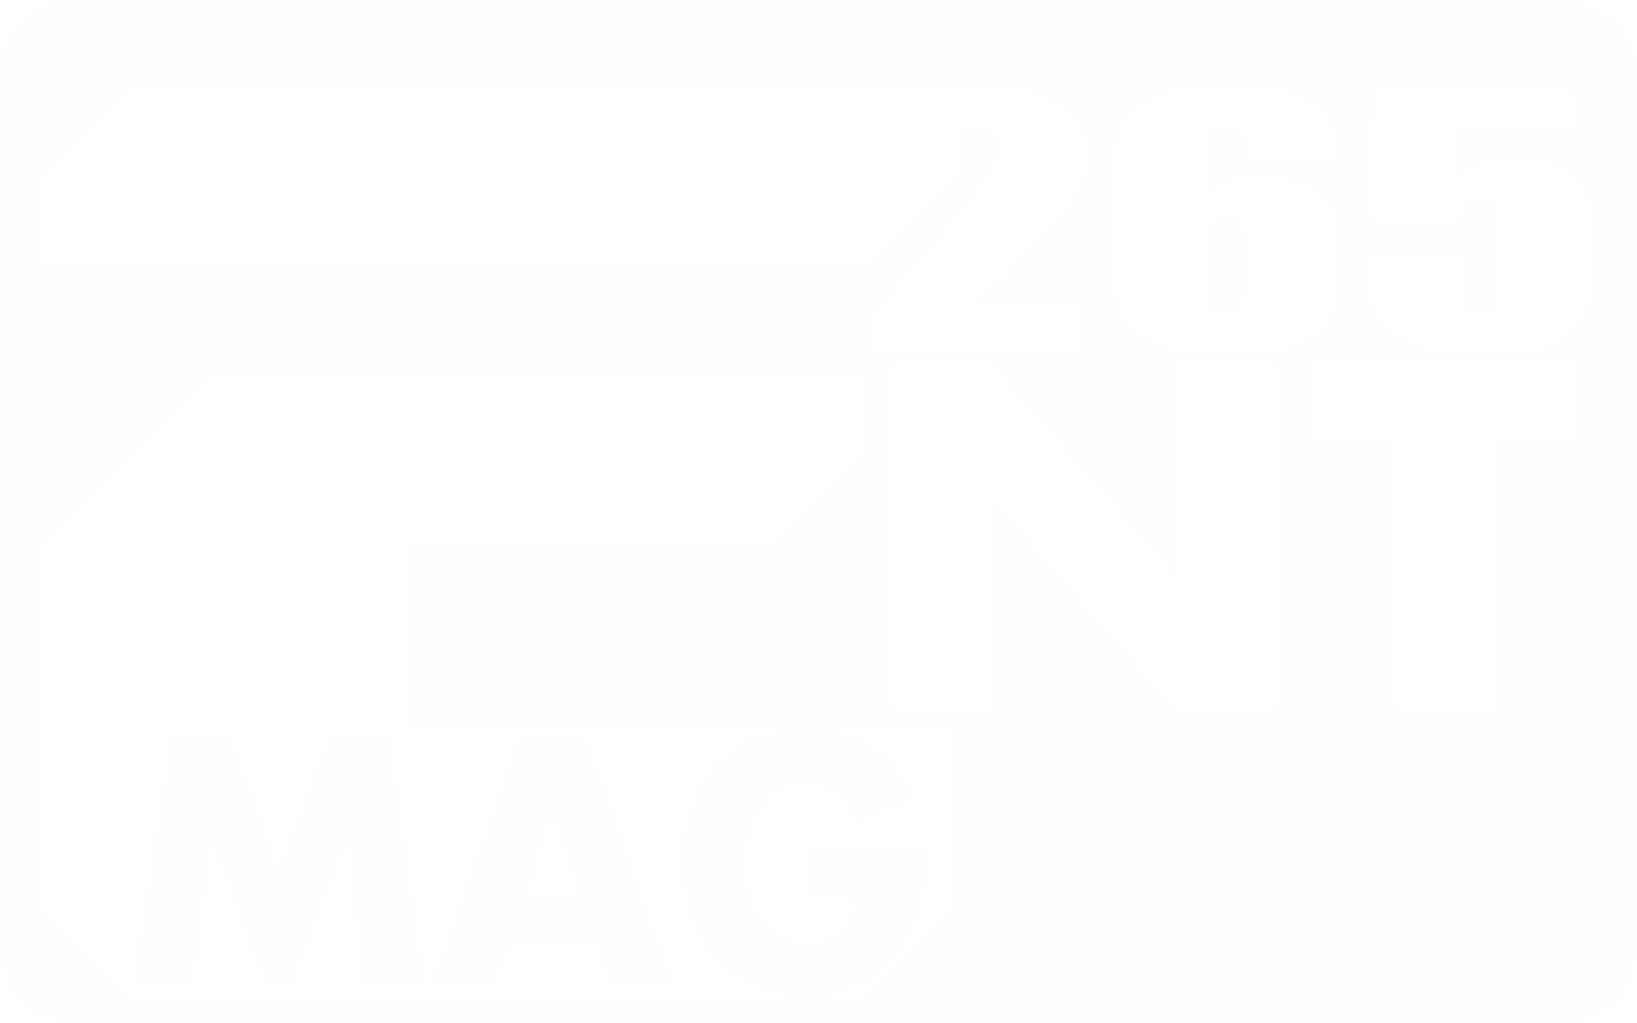 265 ENT MAG